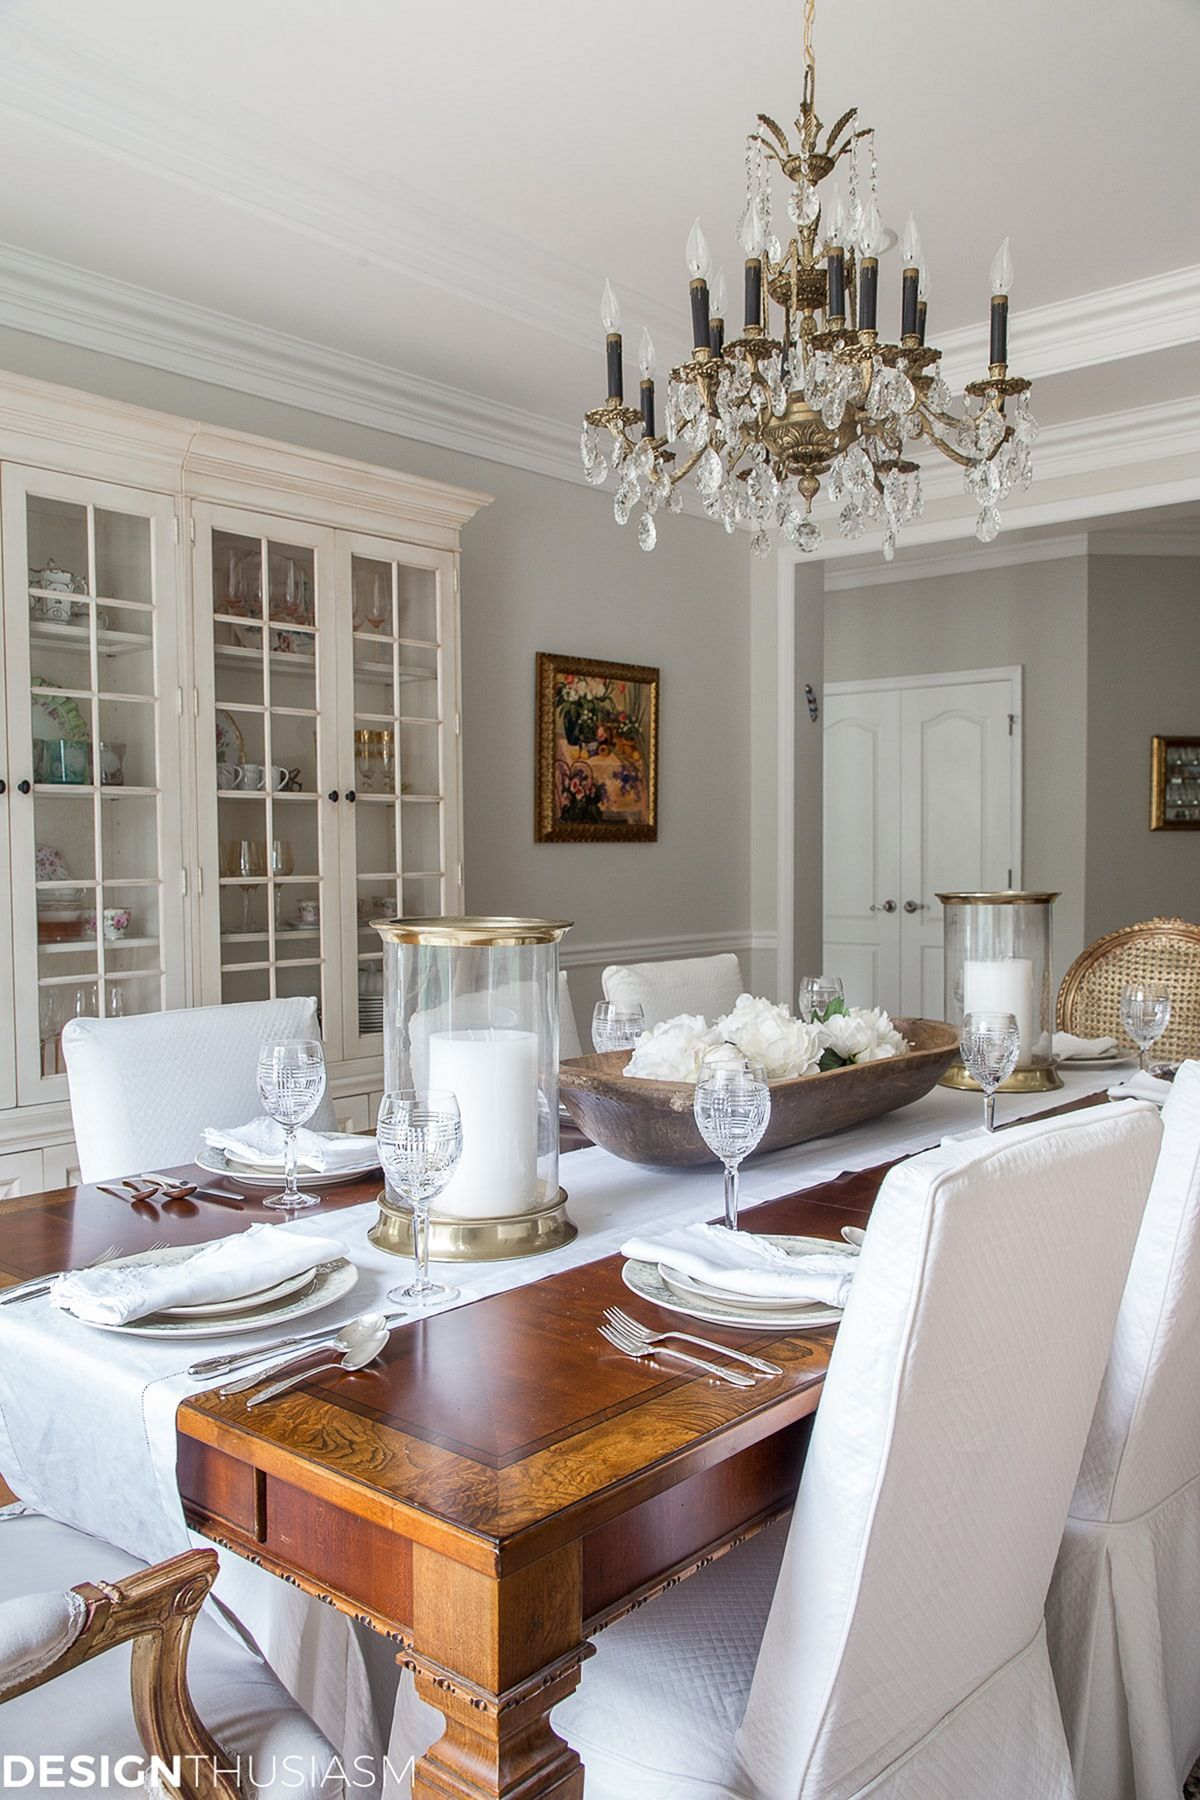 Photo of 15 Marvelous French Country Dining Room Design You Have To See